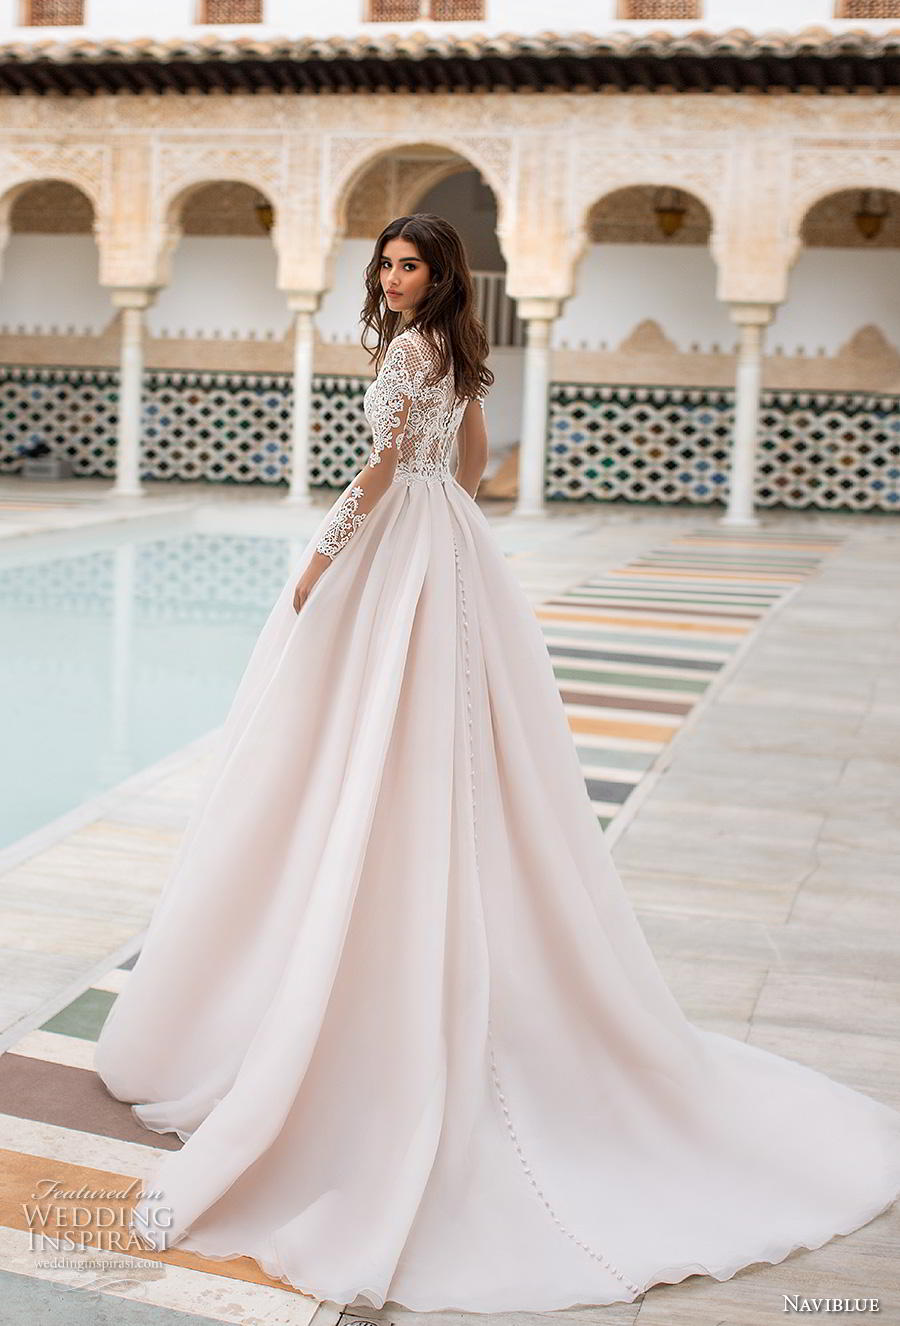 naviblue 2019 bridal long sleeves jewel neck heavily embellished bodice elegant a  line wedding dress covered lace back chapel train (9) bv